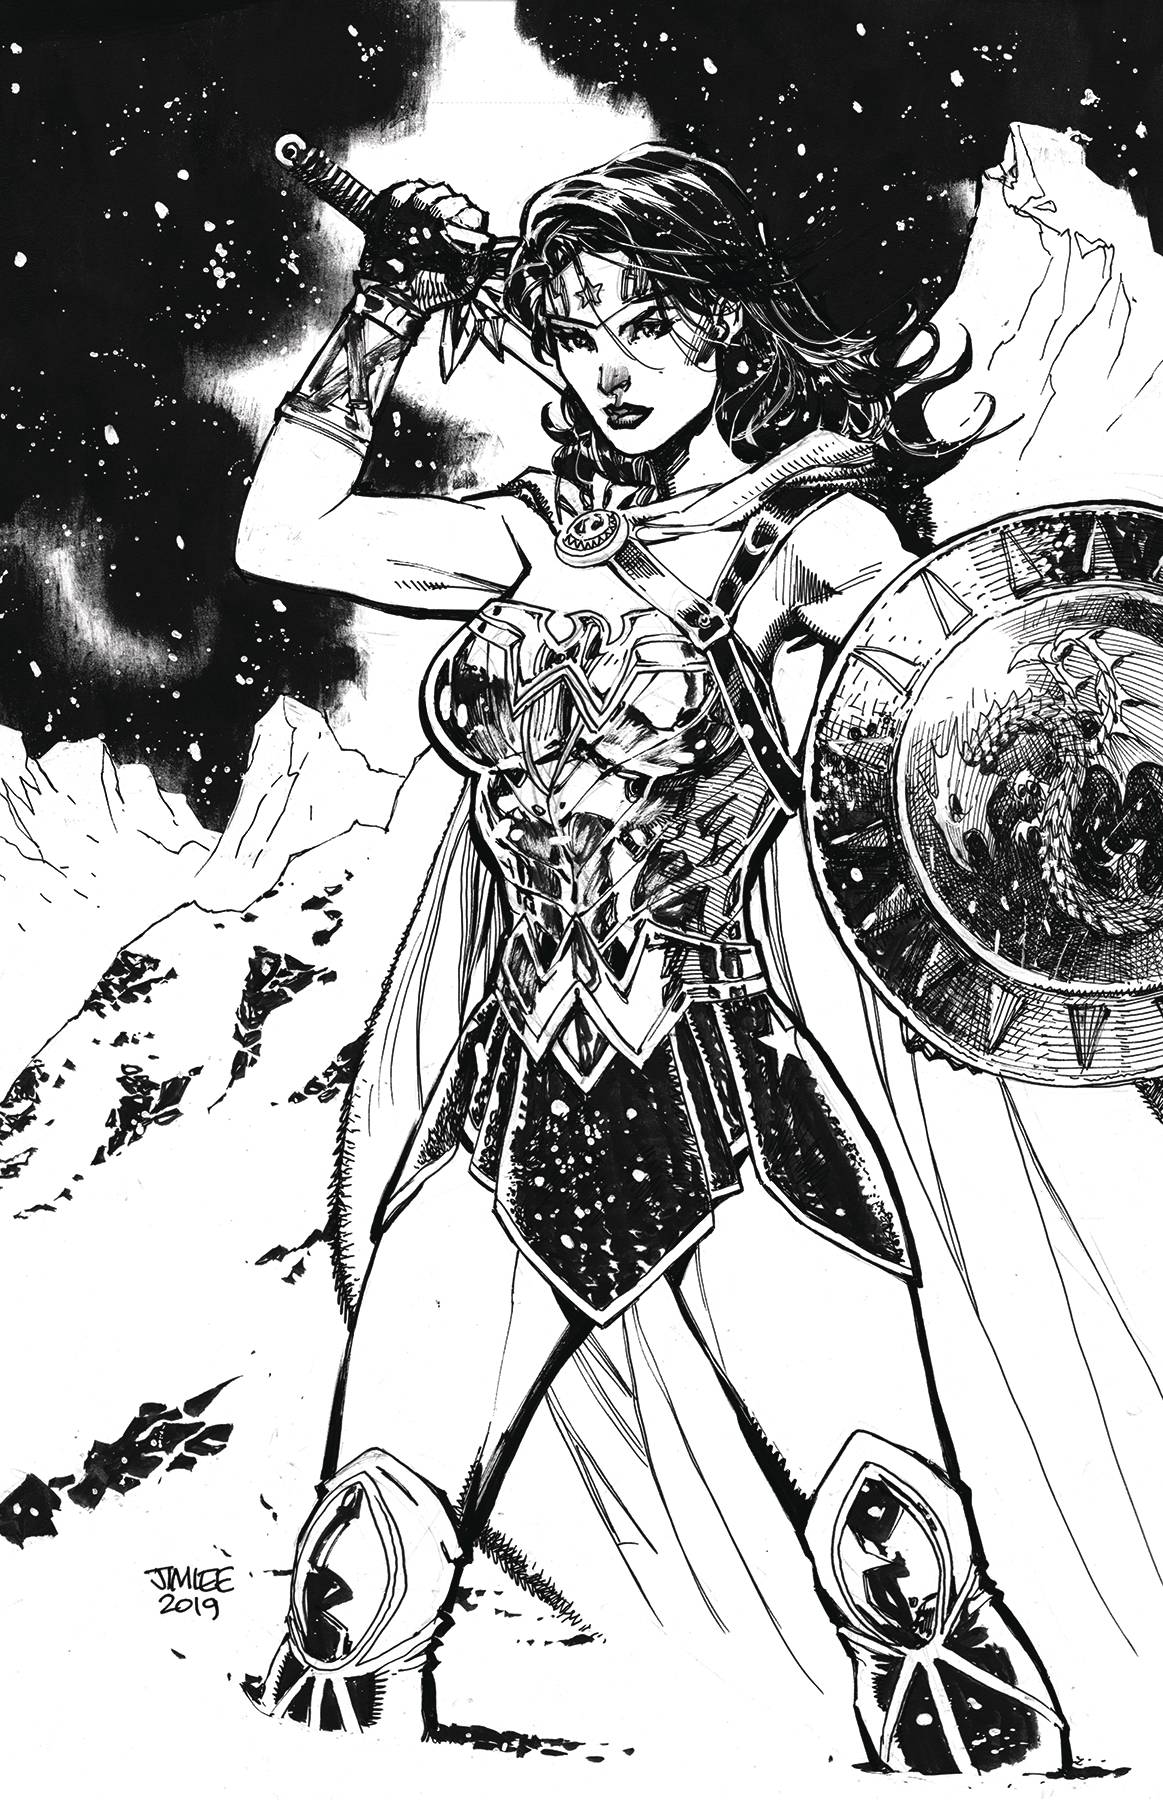 WONDER WOMAN #759 CARD STOCK JIM LEE VAR ED